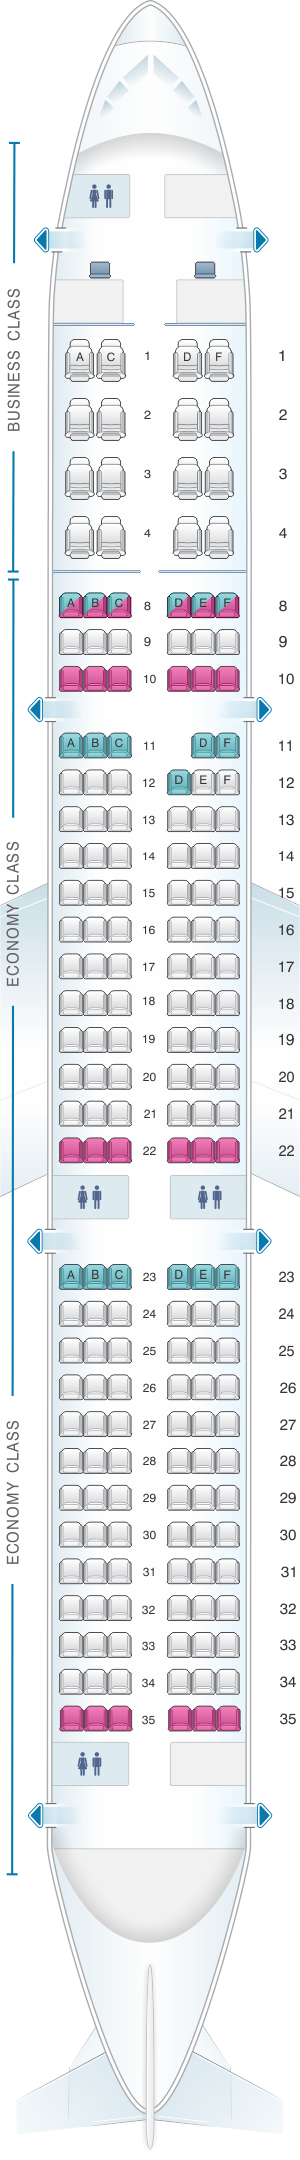 Seat map for Aeroflot Russian Airlines Airbus A321 Config.2